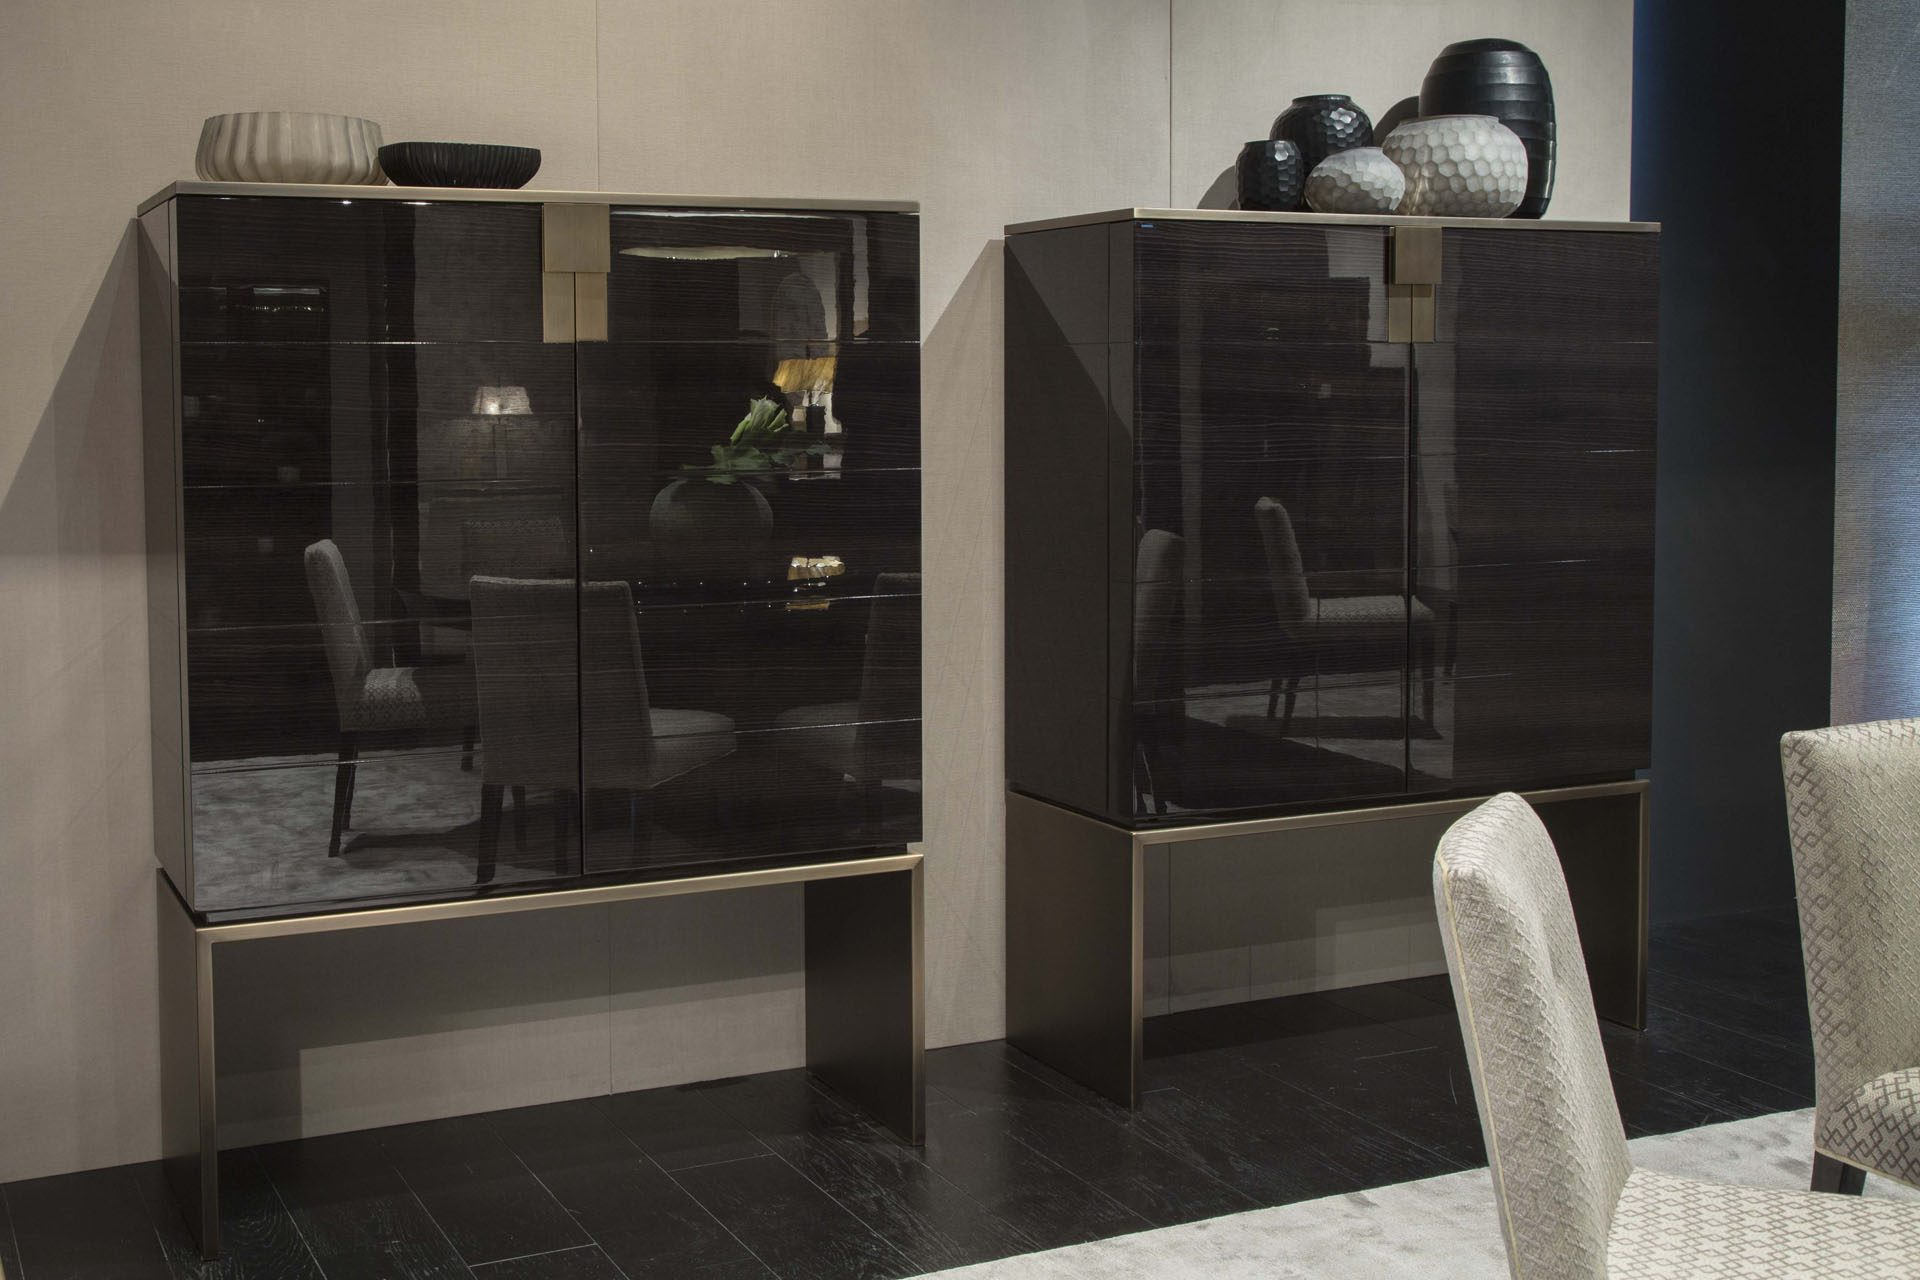 Black and More Cabinet